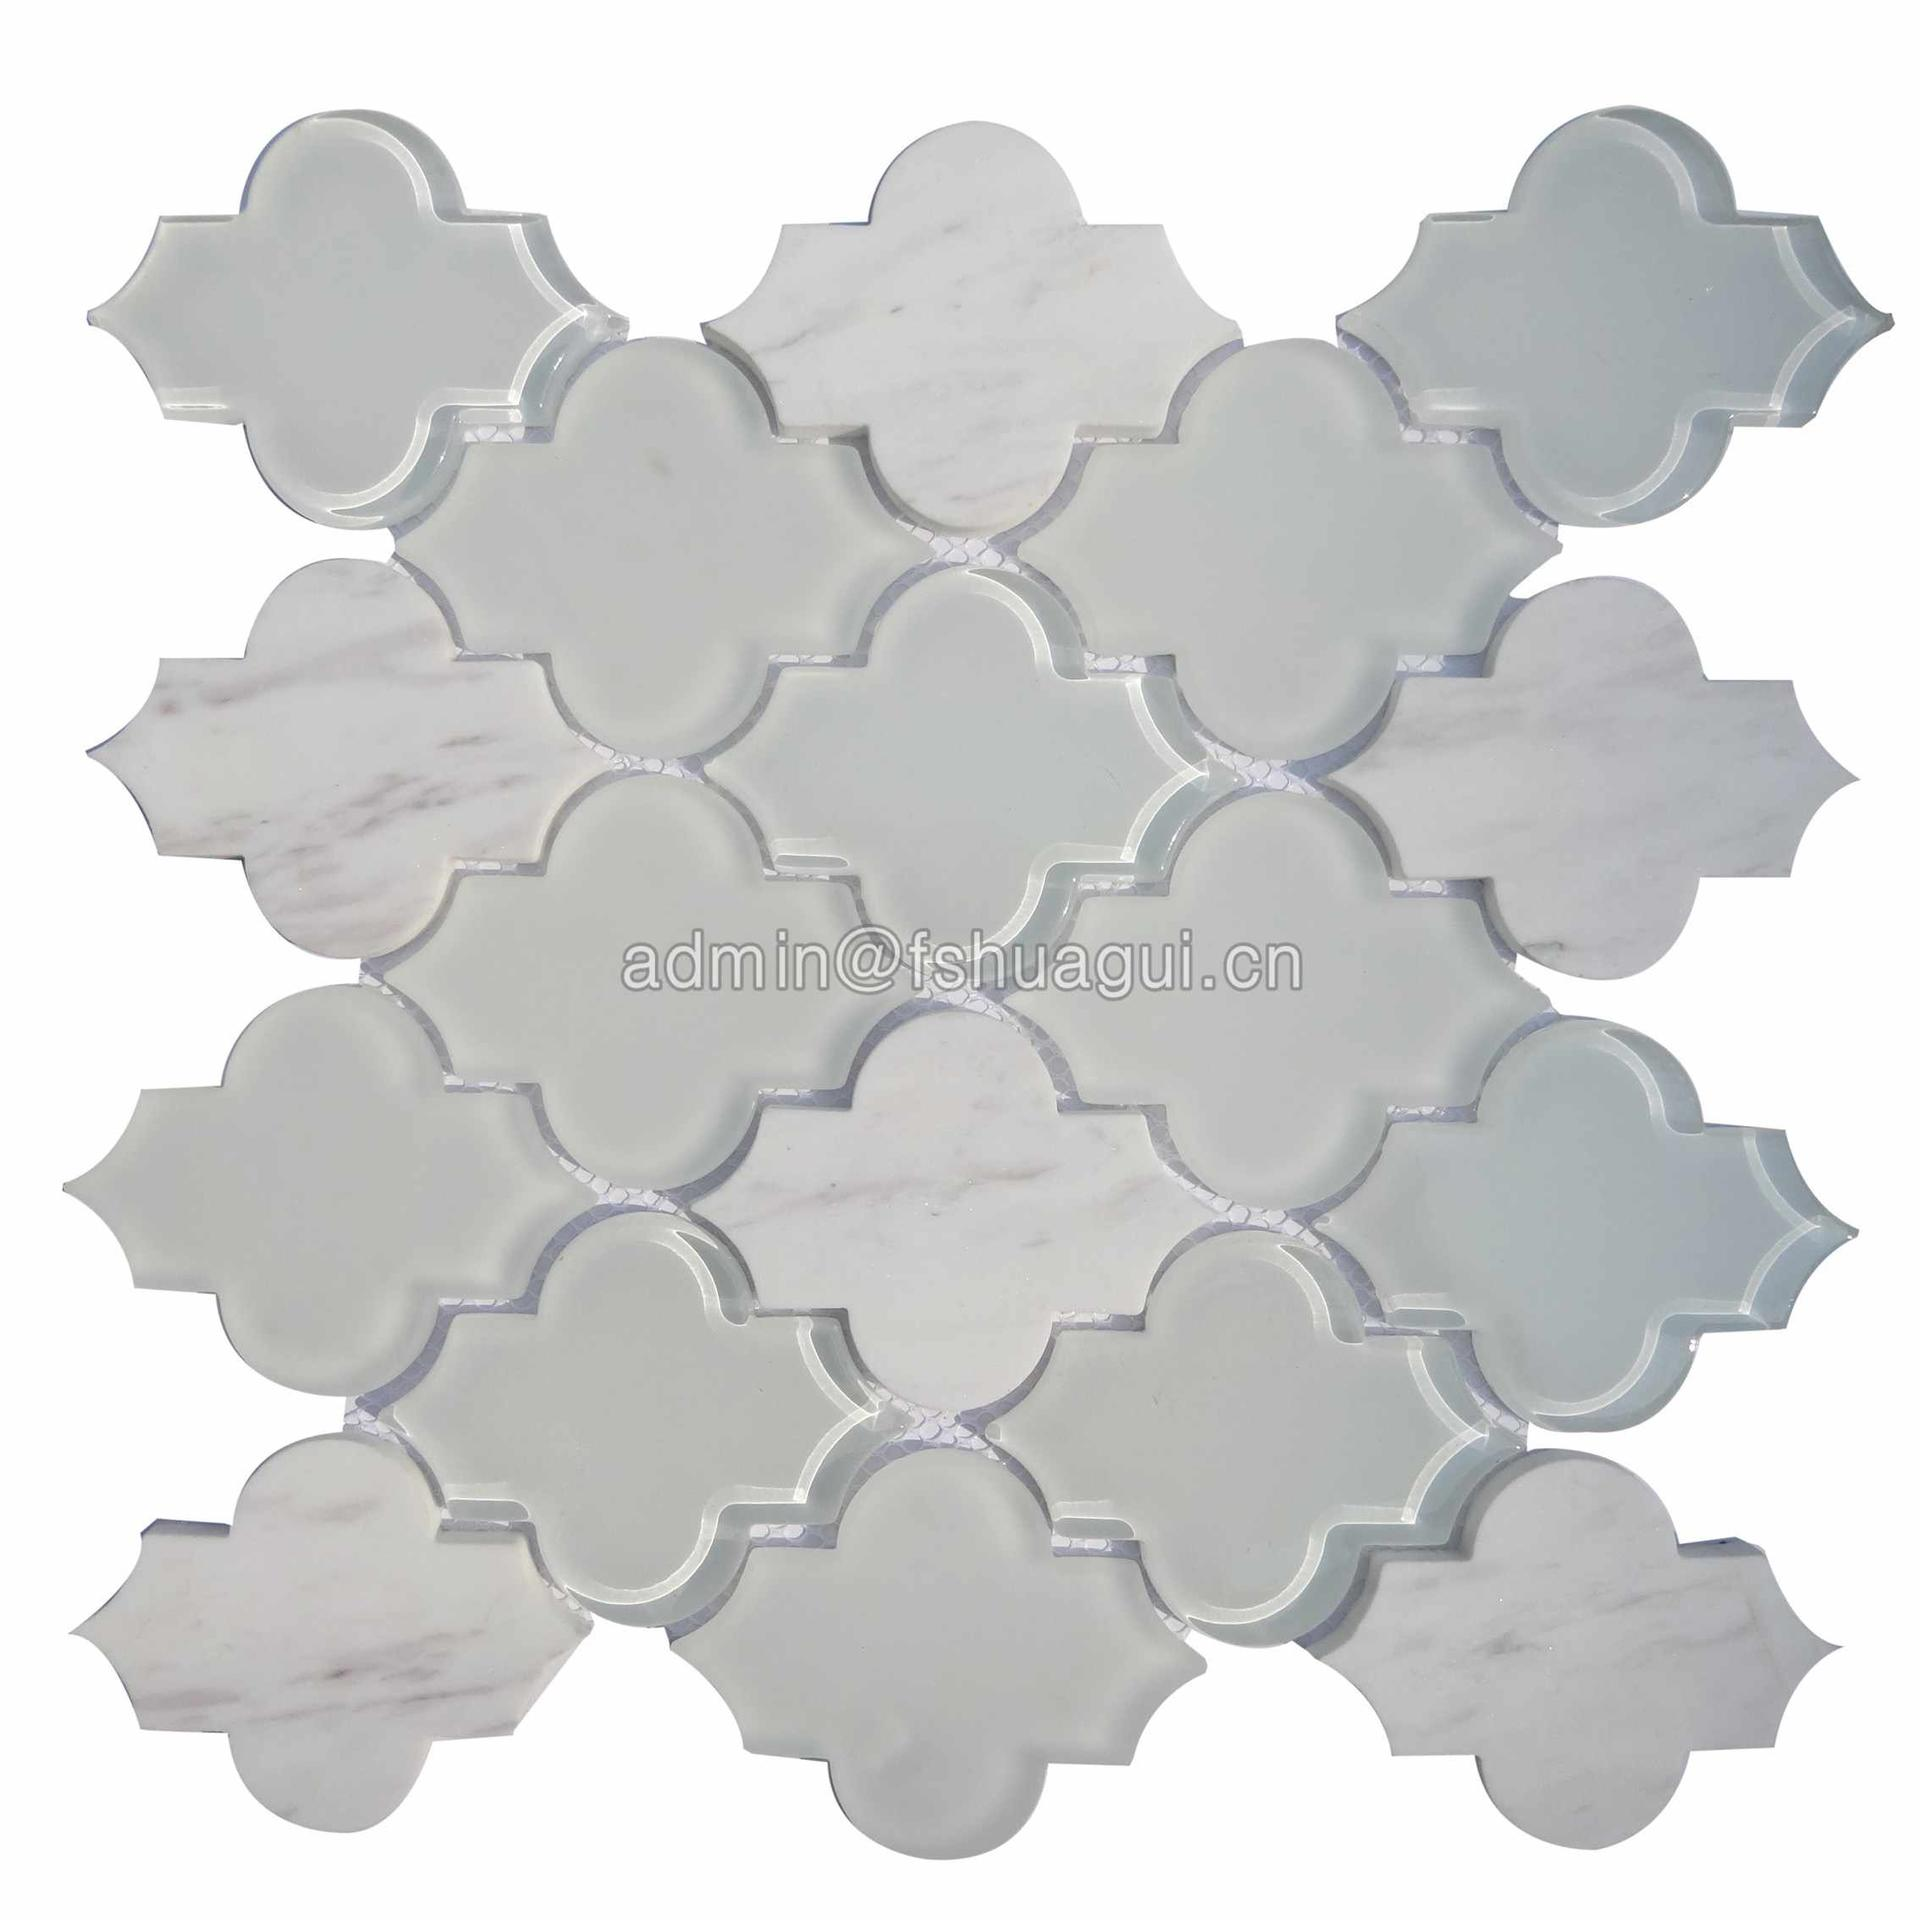 Extraordinary arabesque Carrara marble and white crystal glass mosaic tiles